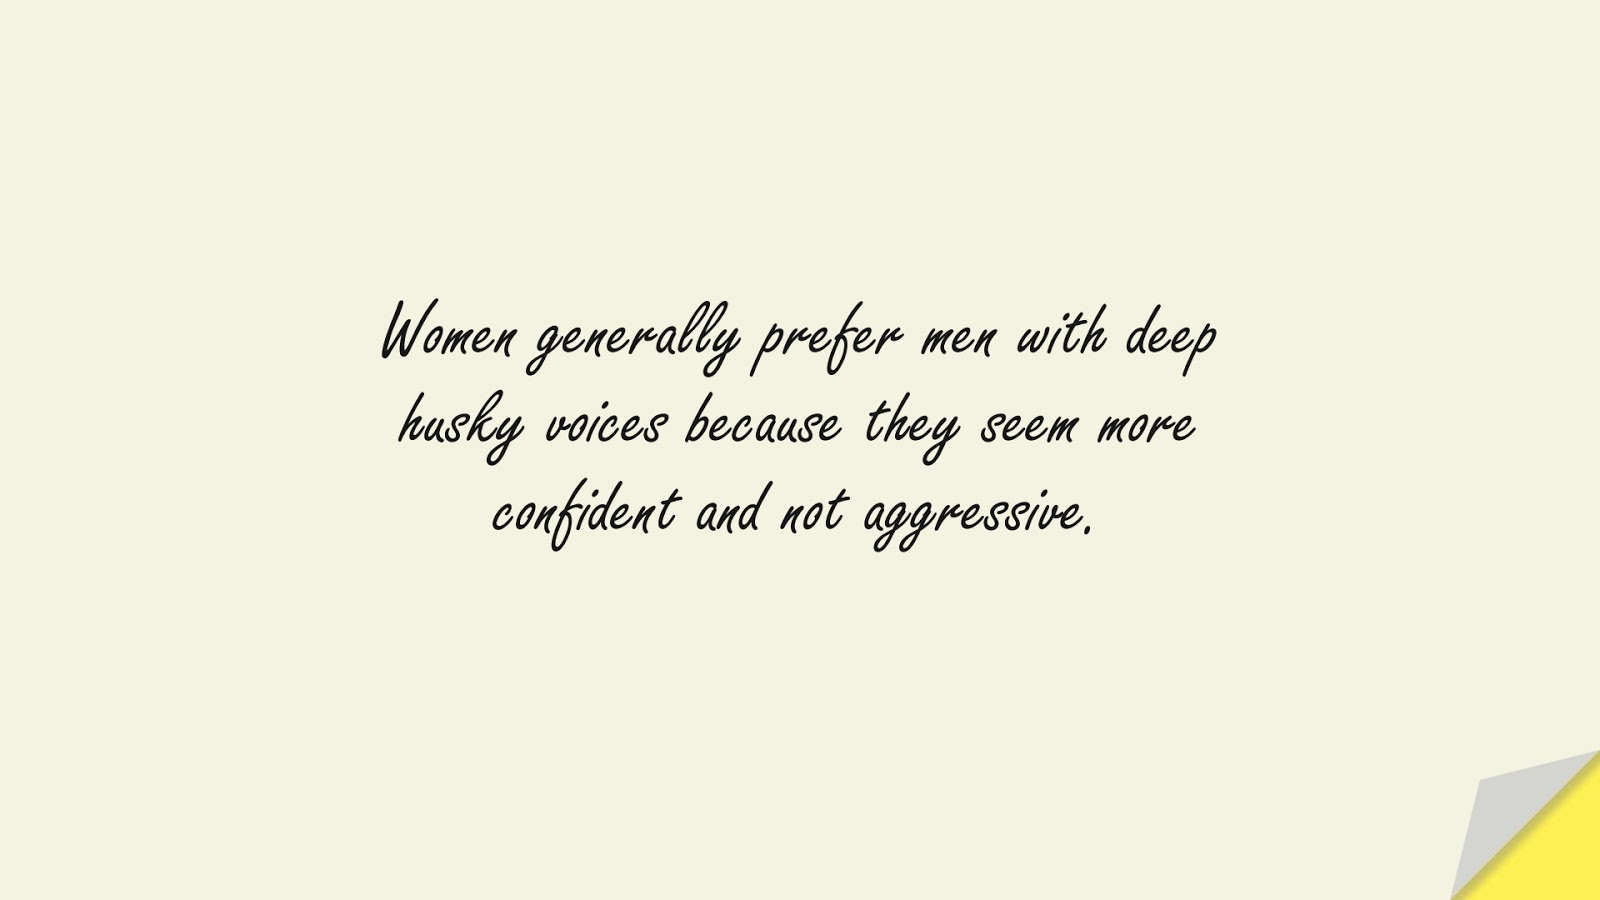 Women generally prefer men with deep husky voices because they seem more confident and not aggressive.FALSE